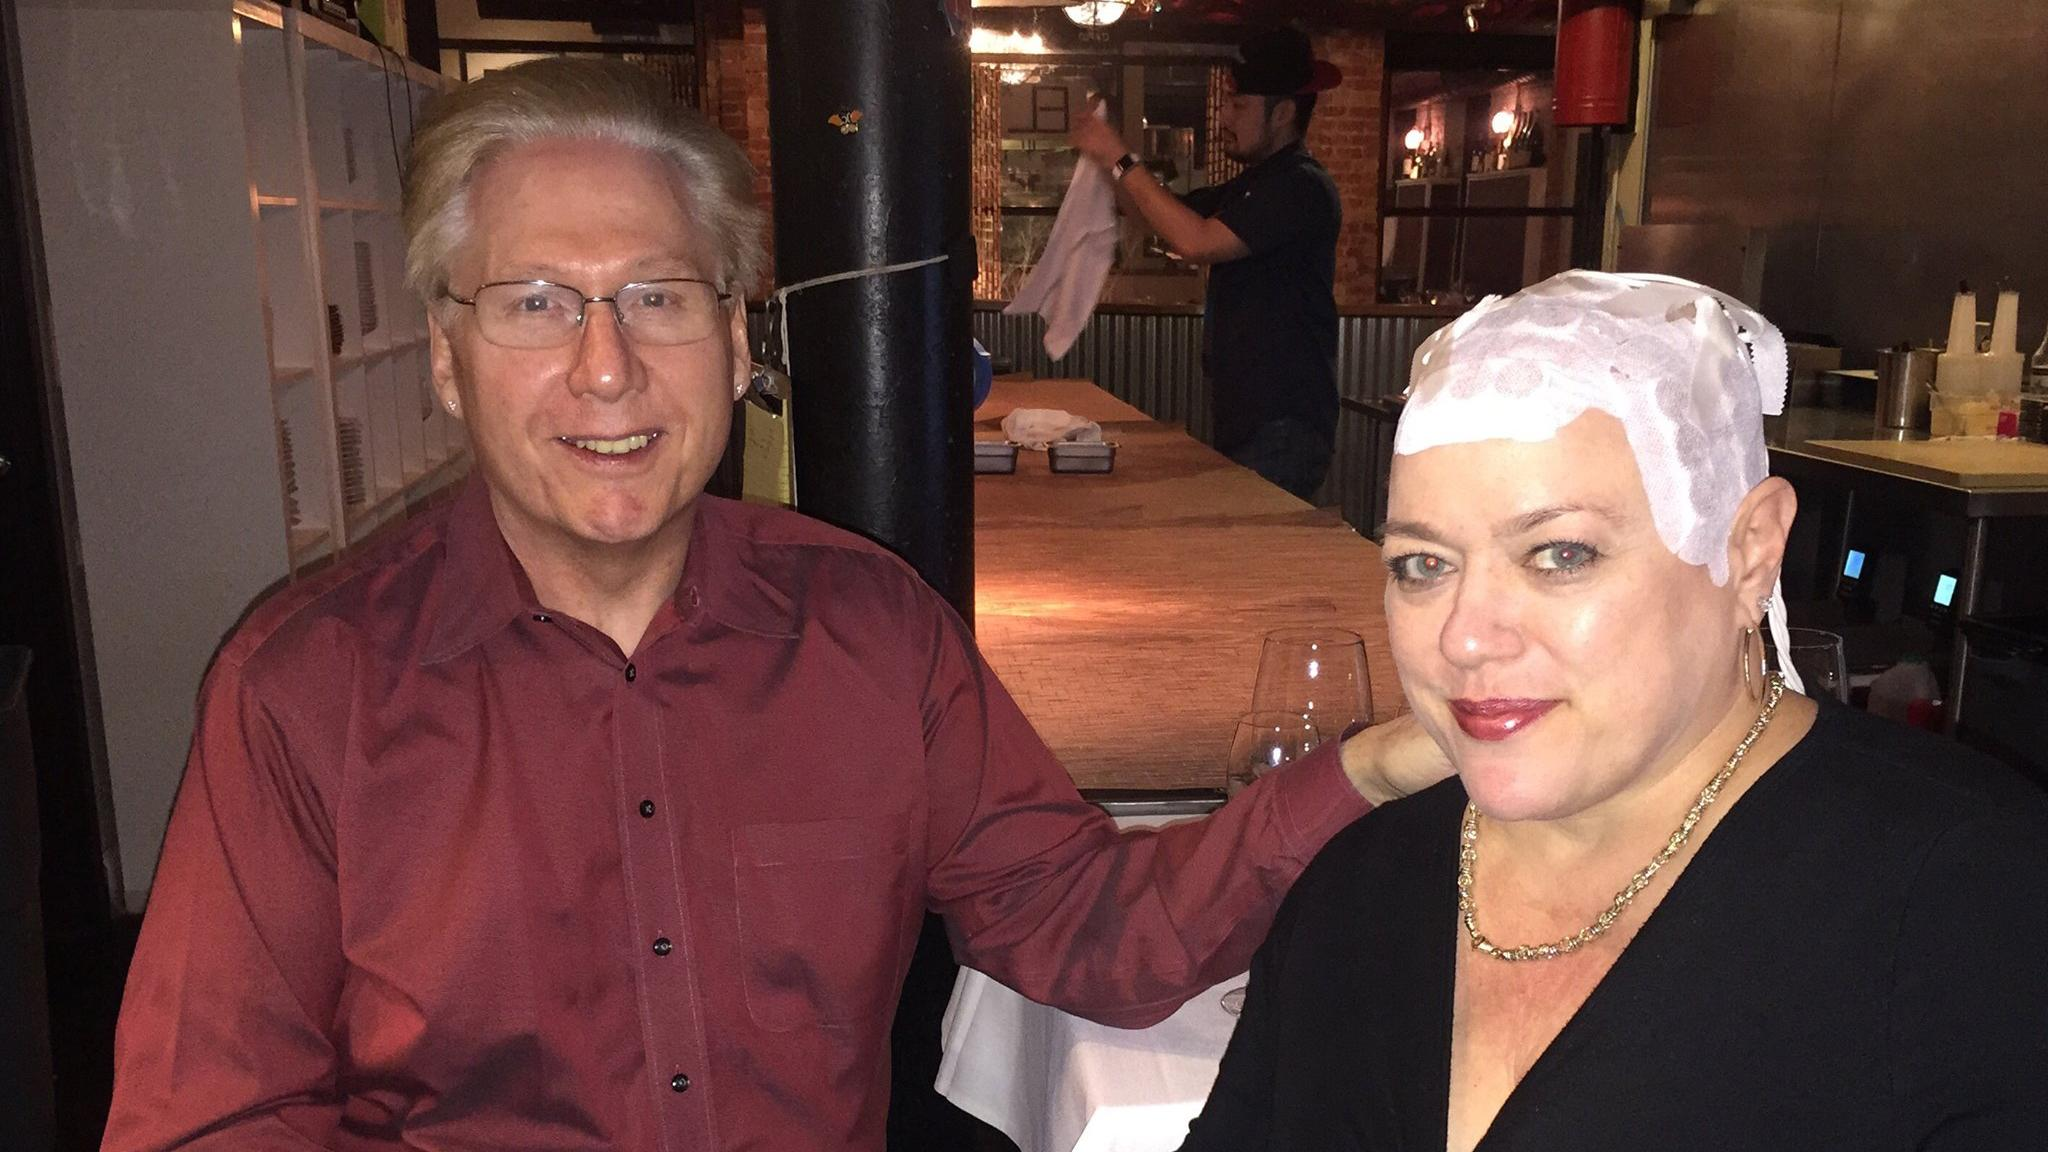 """I never cover it. I do put a light color hat on it to keep the sun off of it but I don't wear a wig or cap every day,"" said Joyce Endresen, who was diagnosed with glioblastoma and uses a skull-worn electric fields cap while dining at a restaurant with her husband, Hal. (Courtesy Joyce Endresen)"